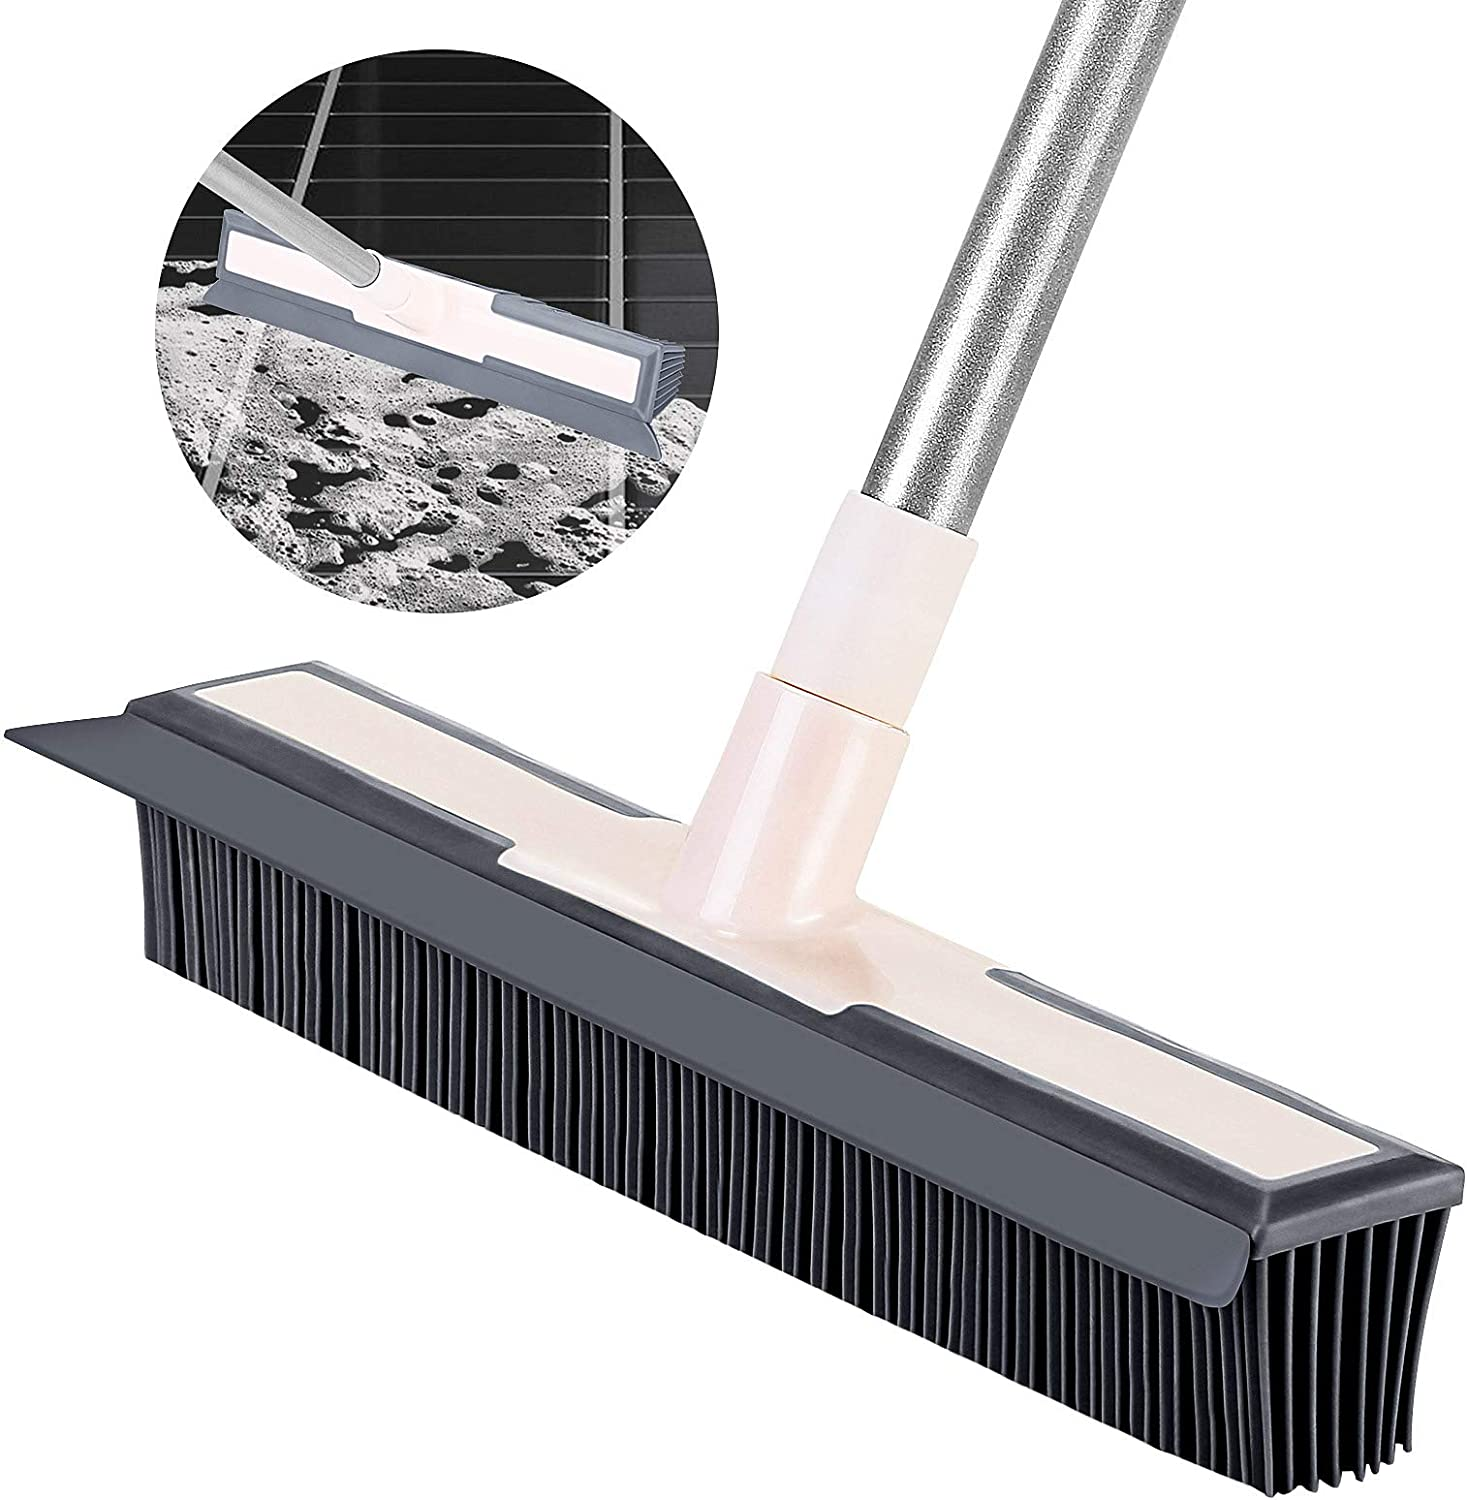 Holulo 2in1 Rubber Broom with Squeegee Bombing free shipping Sale SALE% OFF Removal Pet Bath for Hair